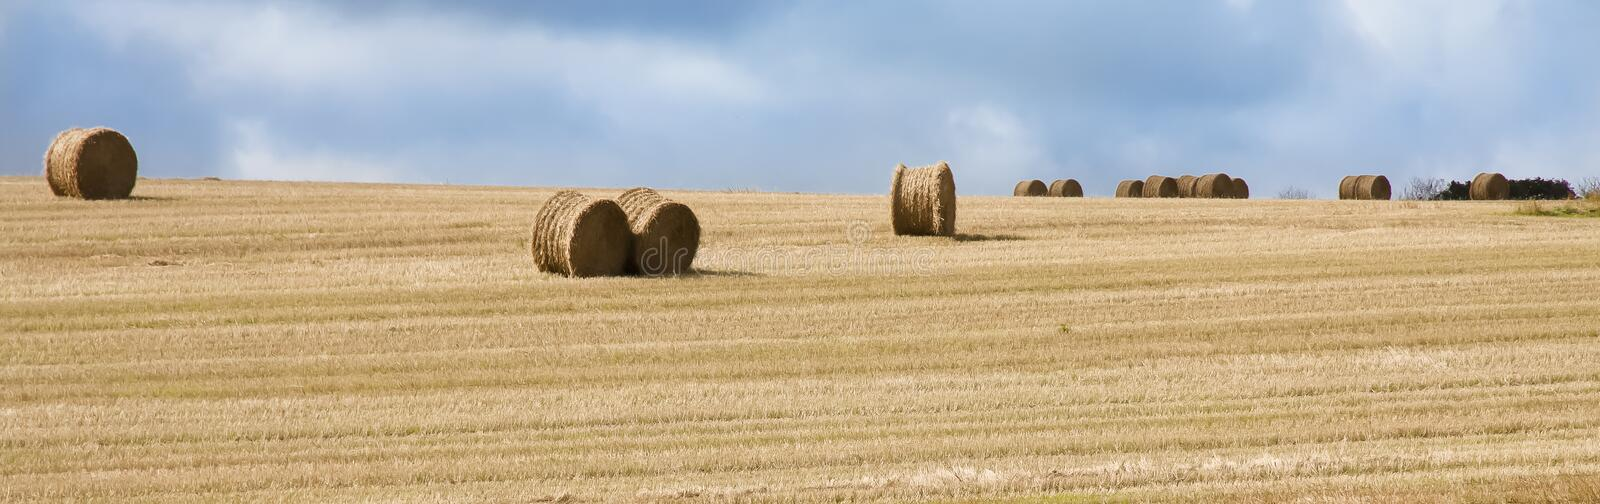 Hay bales on golden field. royalty free stock photography